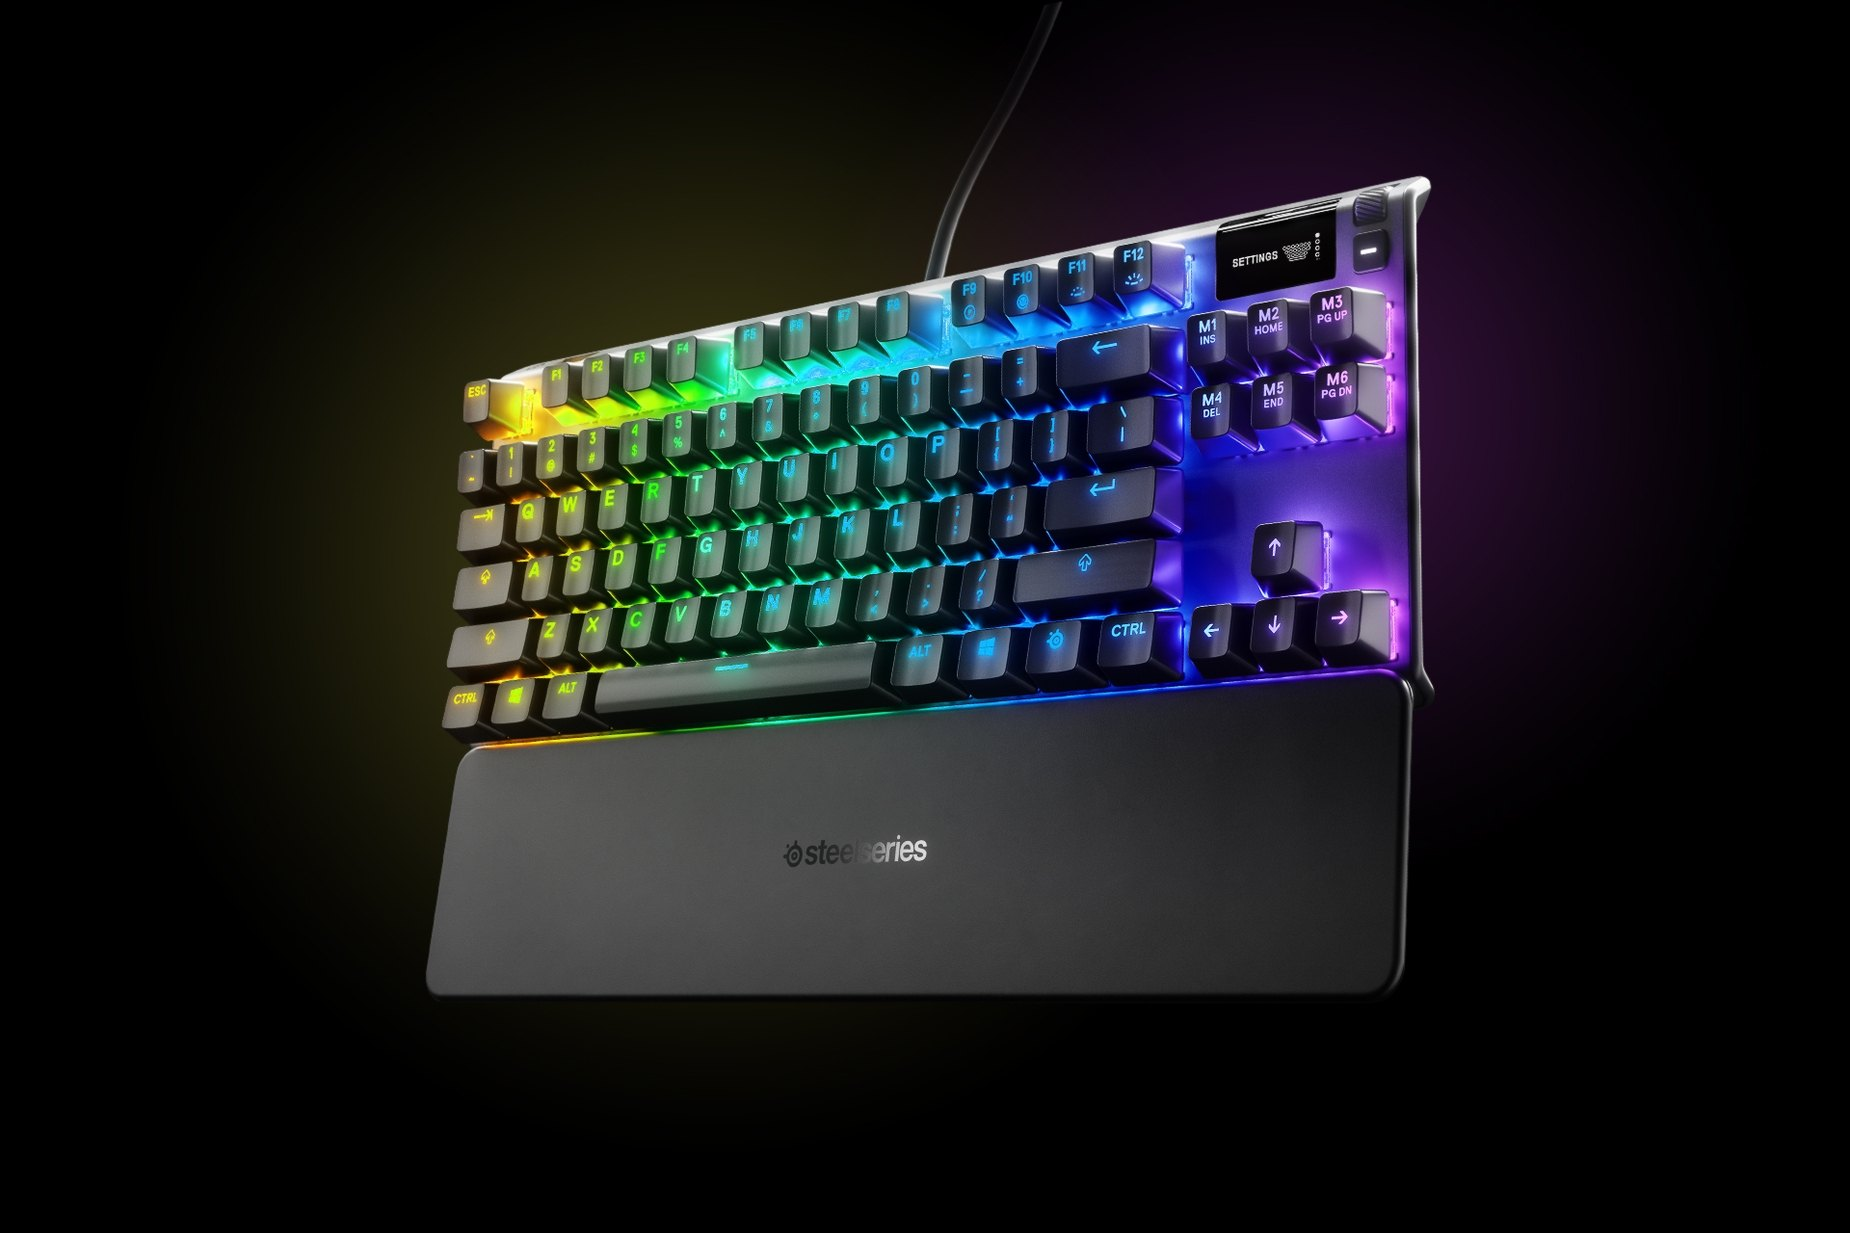 US English-Apex 7 TKL (Blue Switch) gaming keyboard with the illumination lit up on dark background, also shows the OLED screen and controls used to change settings and adjust audio